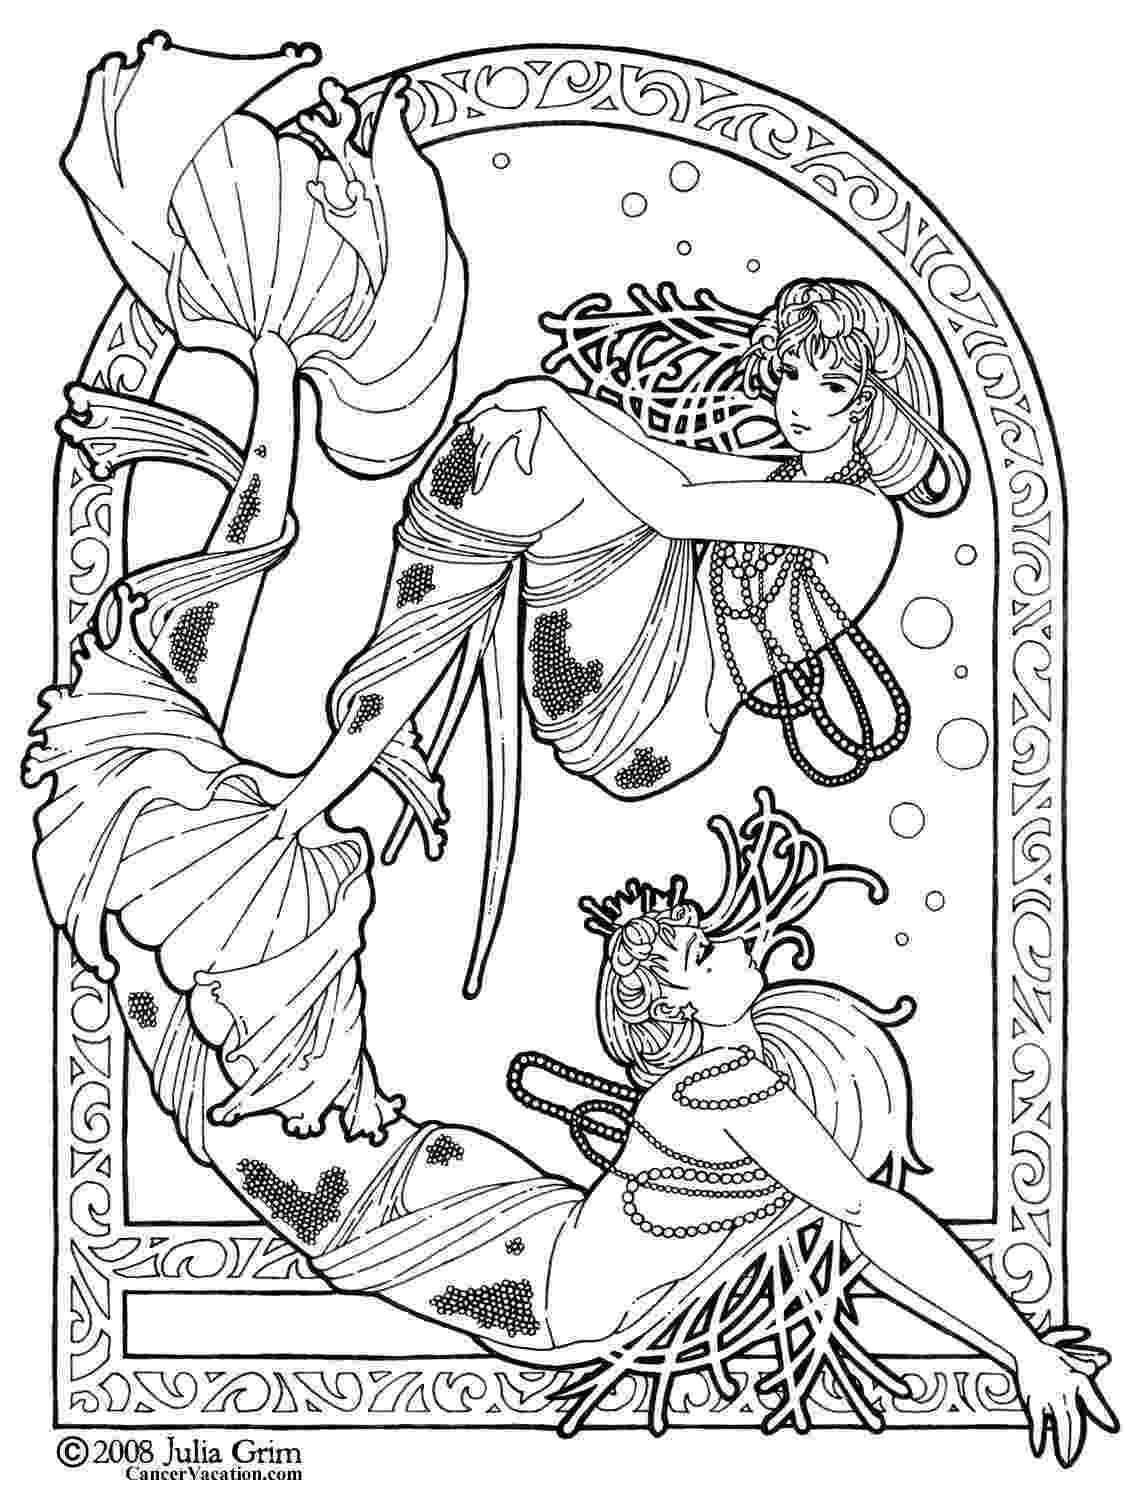 artistic coloring pages art therapy coloring pages to download and print for free pages artistic coloring 1 1